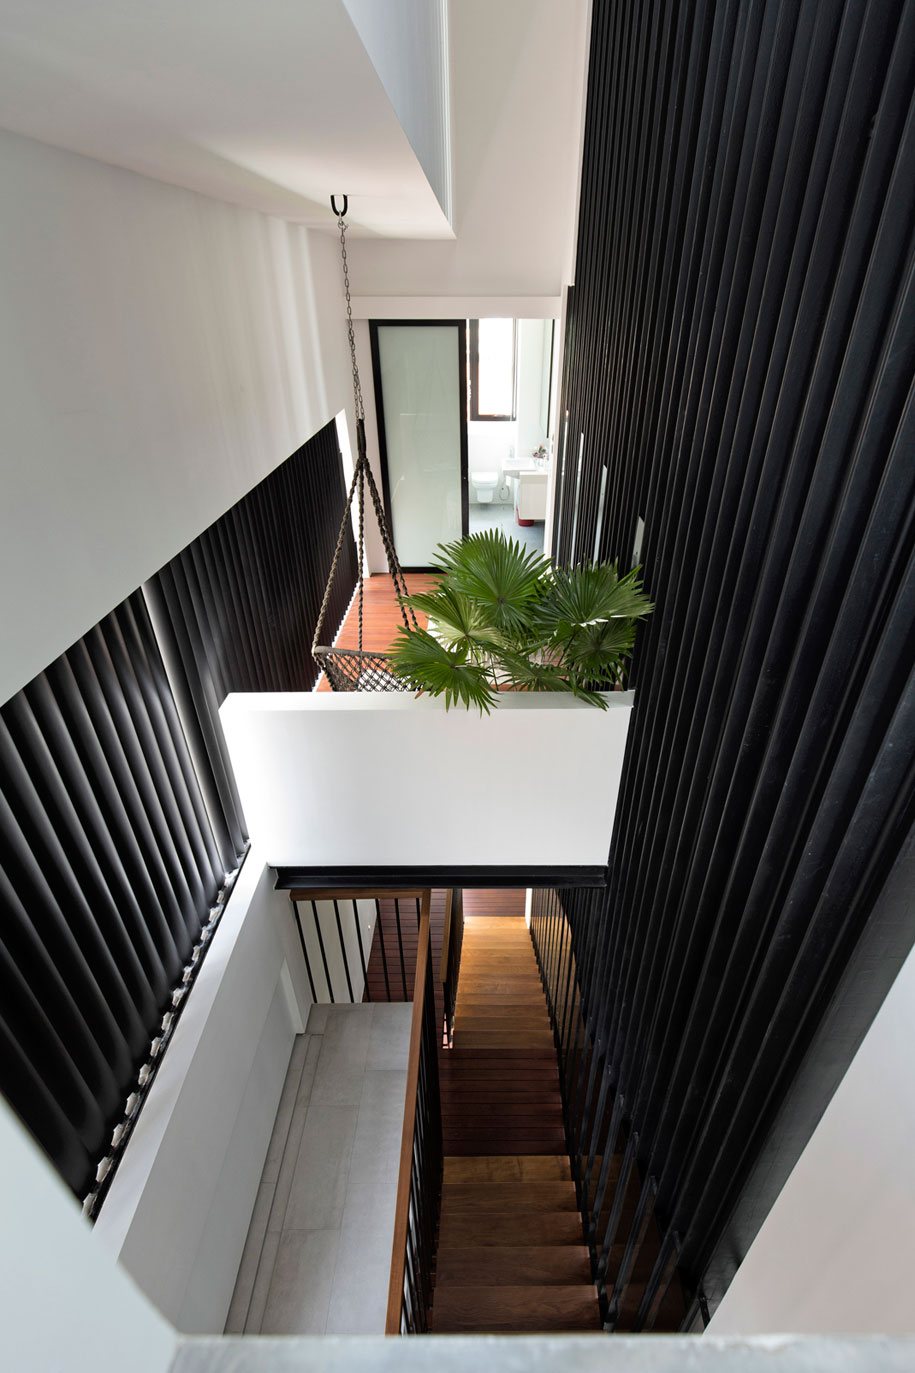 5-view-from-3rd-sty-towards-bedroom-2-side-balcony-and-stairs